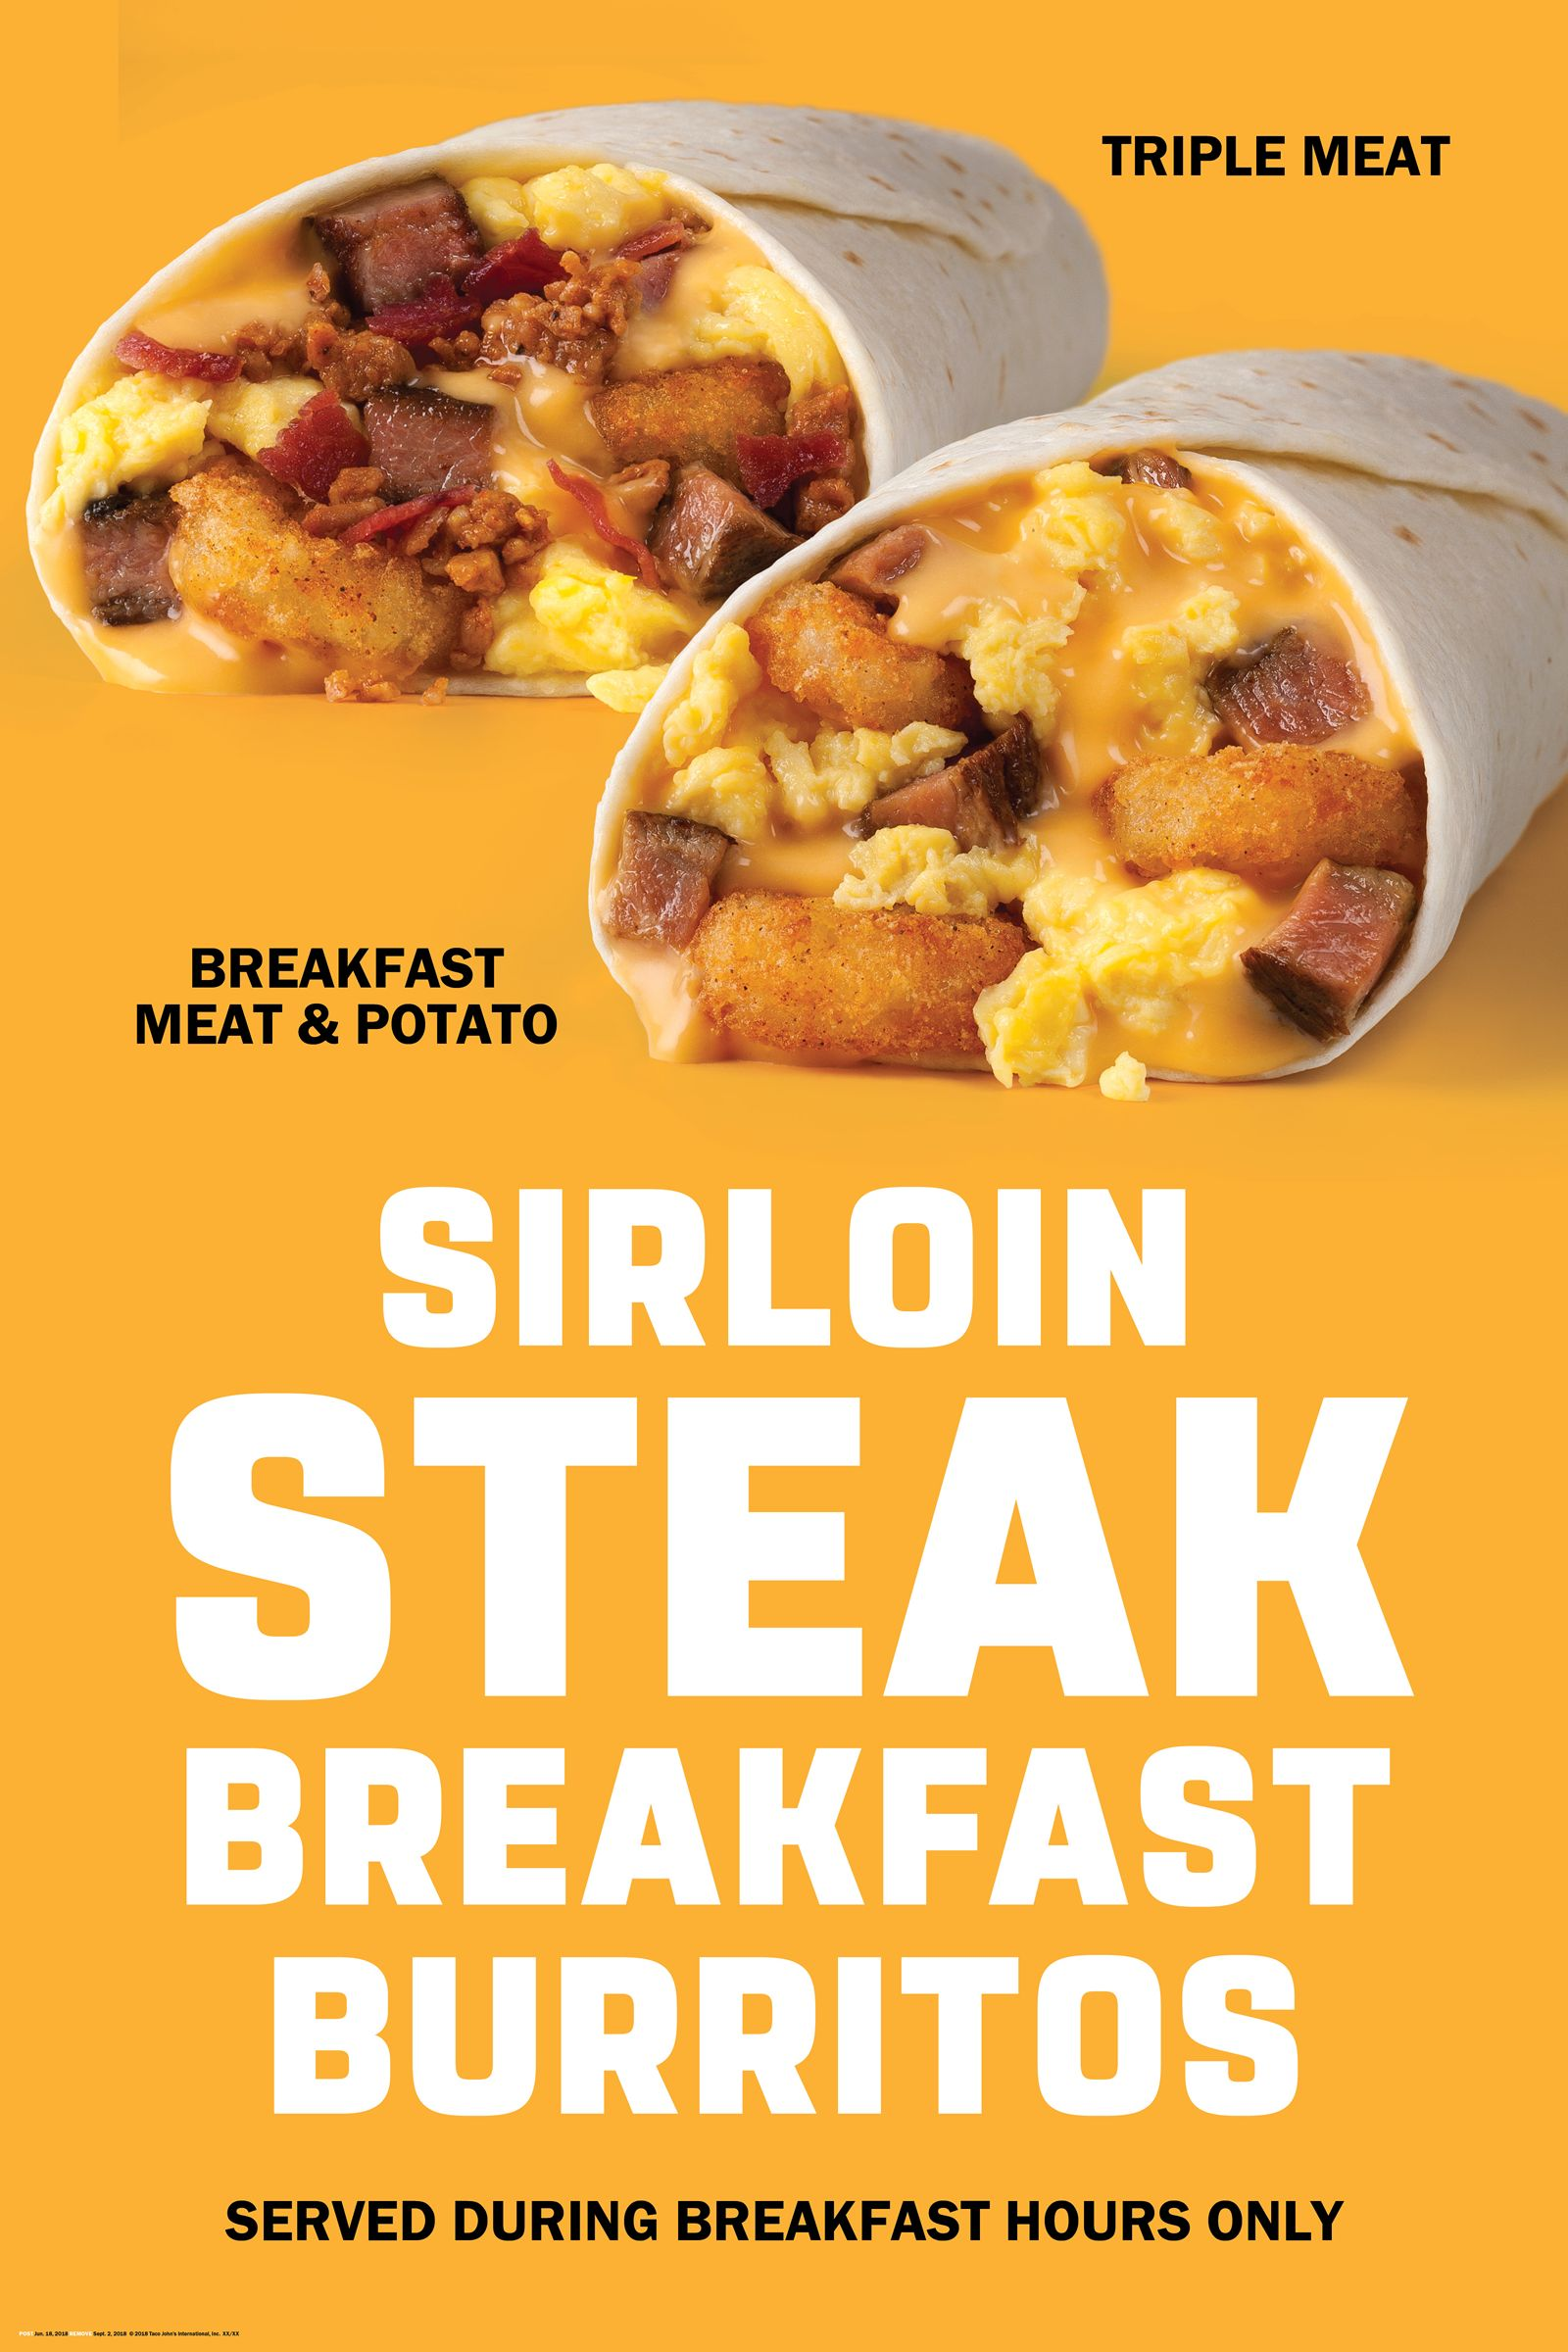 Taco John's Introduces Six New Sirloin Steak Burritos